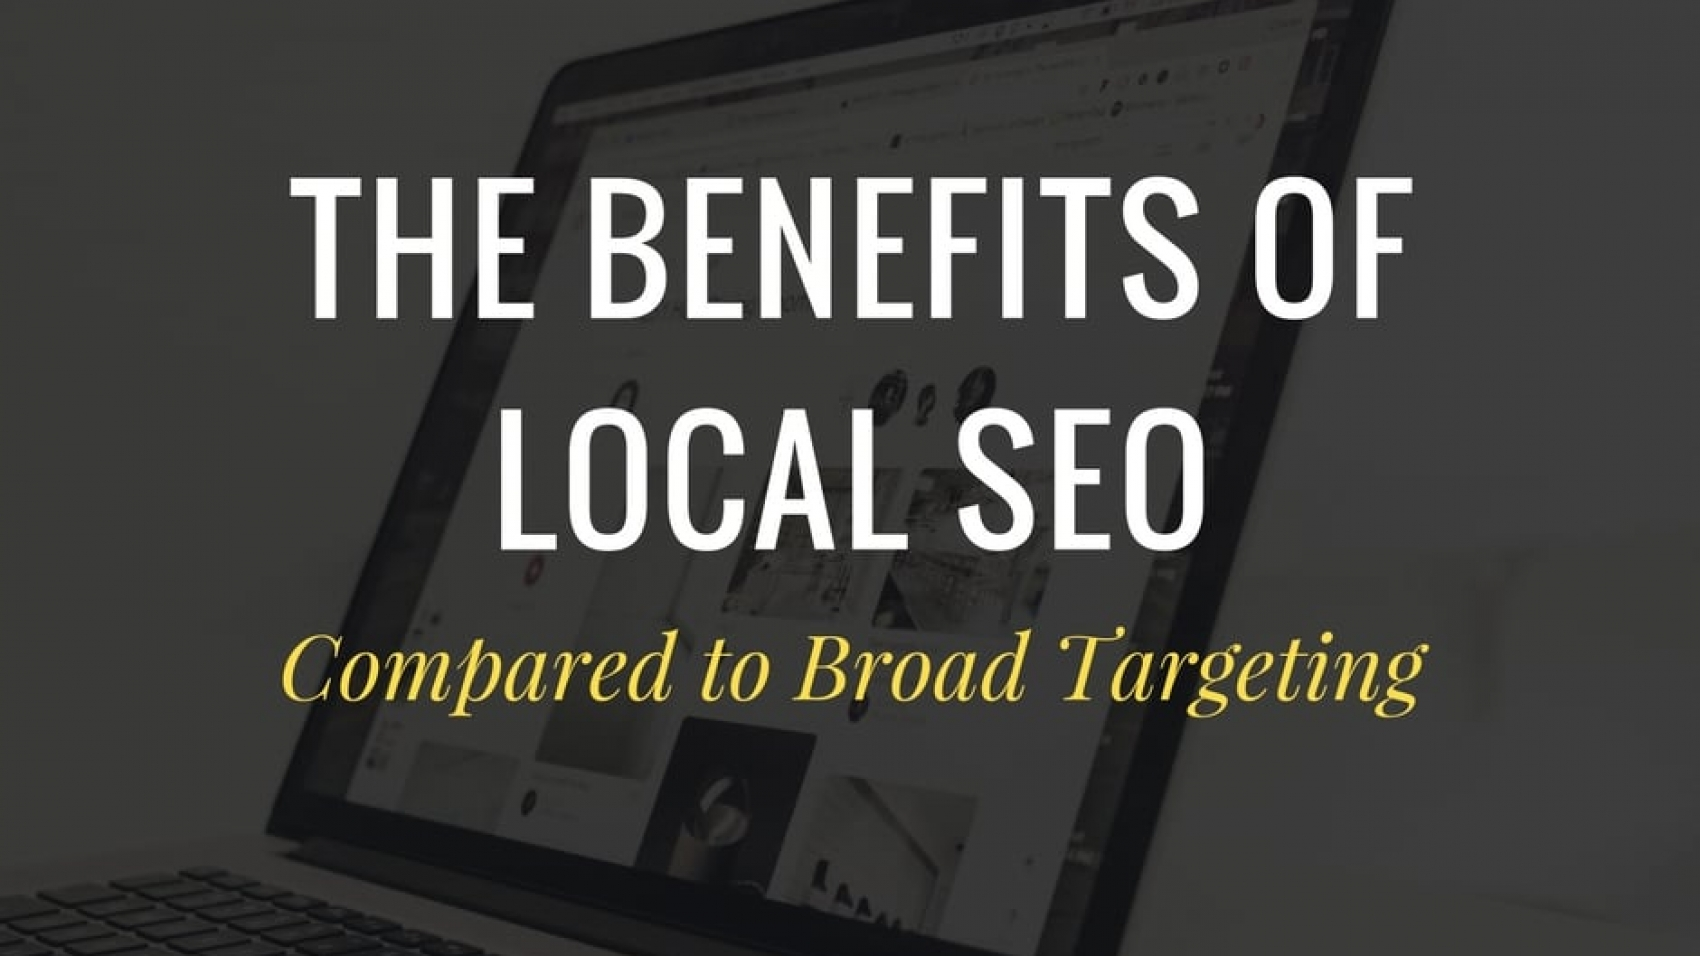 the-benefits-of-local-seo-compared-to-broad-targeting